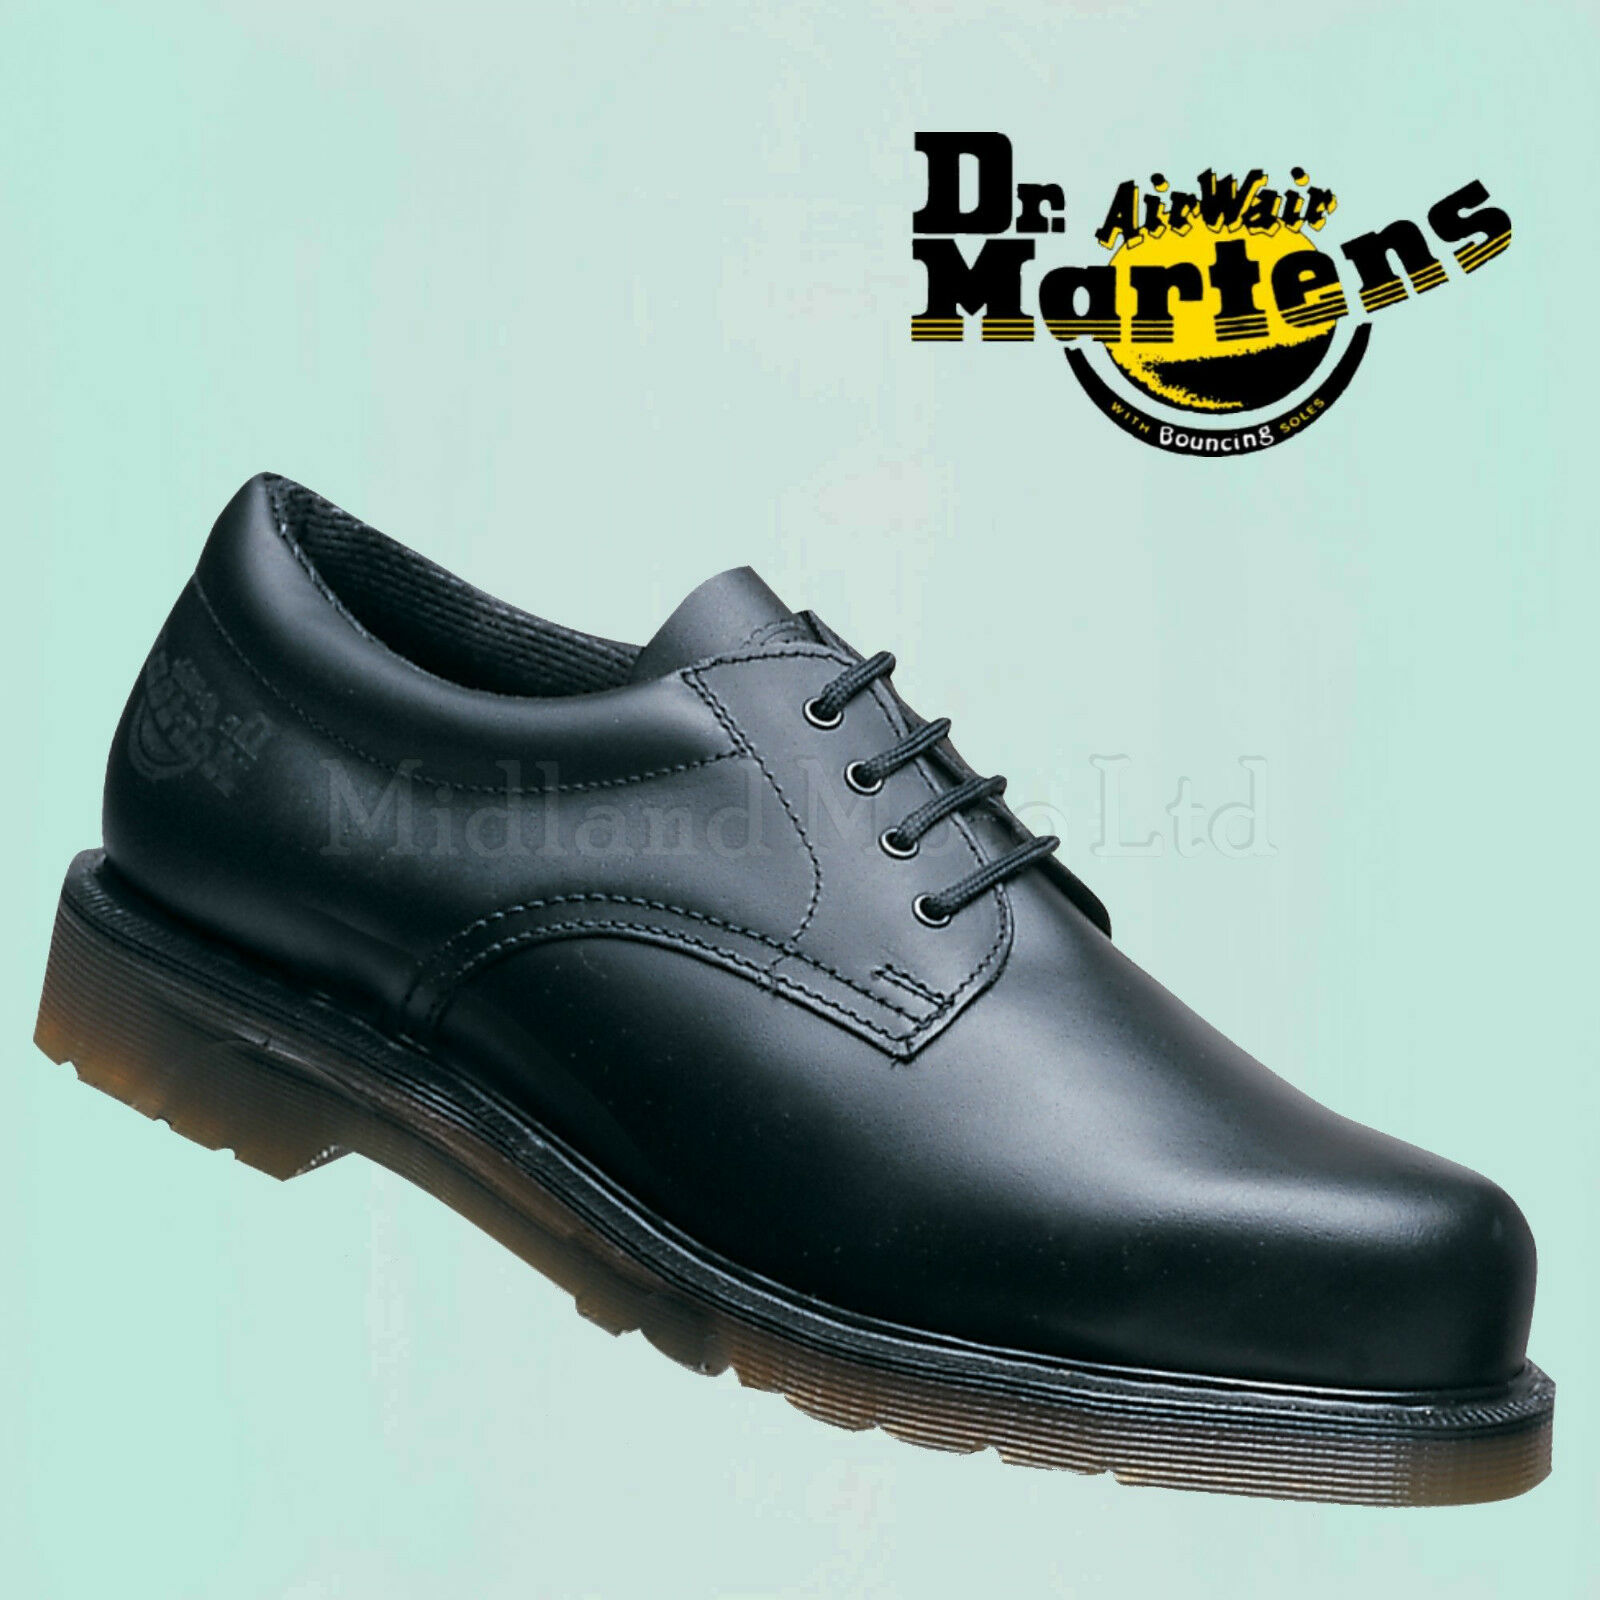 Dr. Martens Steel Toe Cap Safety in Schuhes Doc Martins, New in Safety Box DM's 6735 2216 a13632